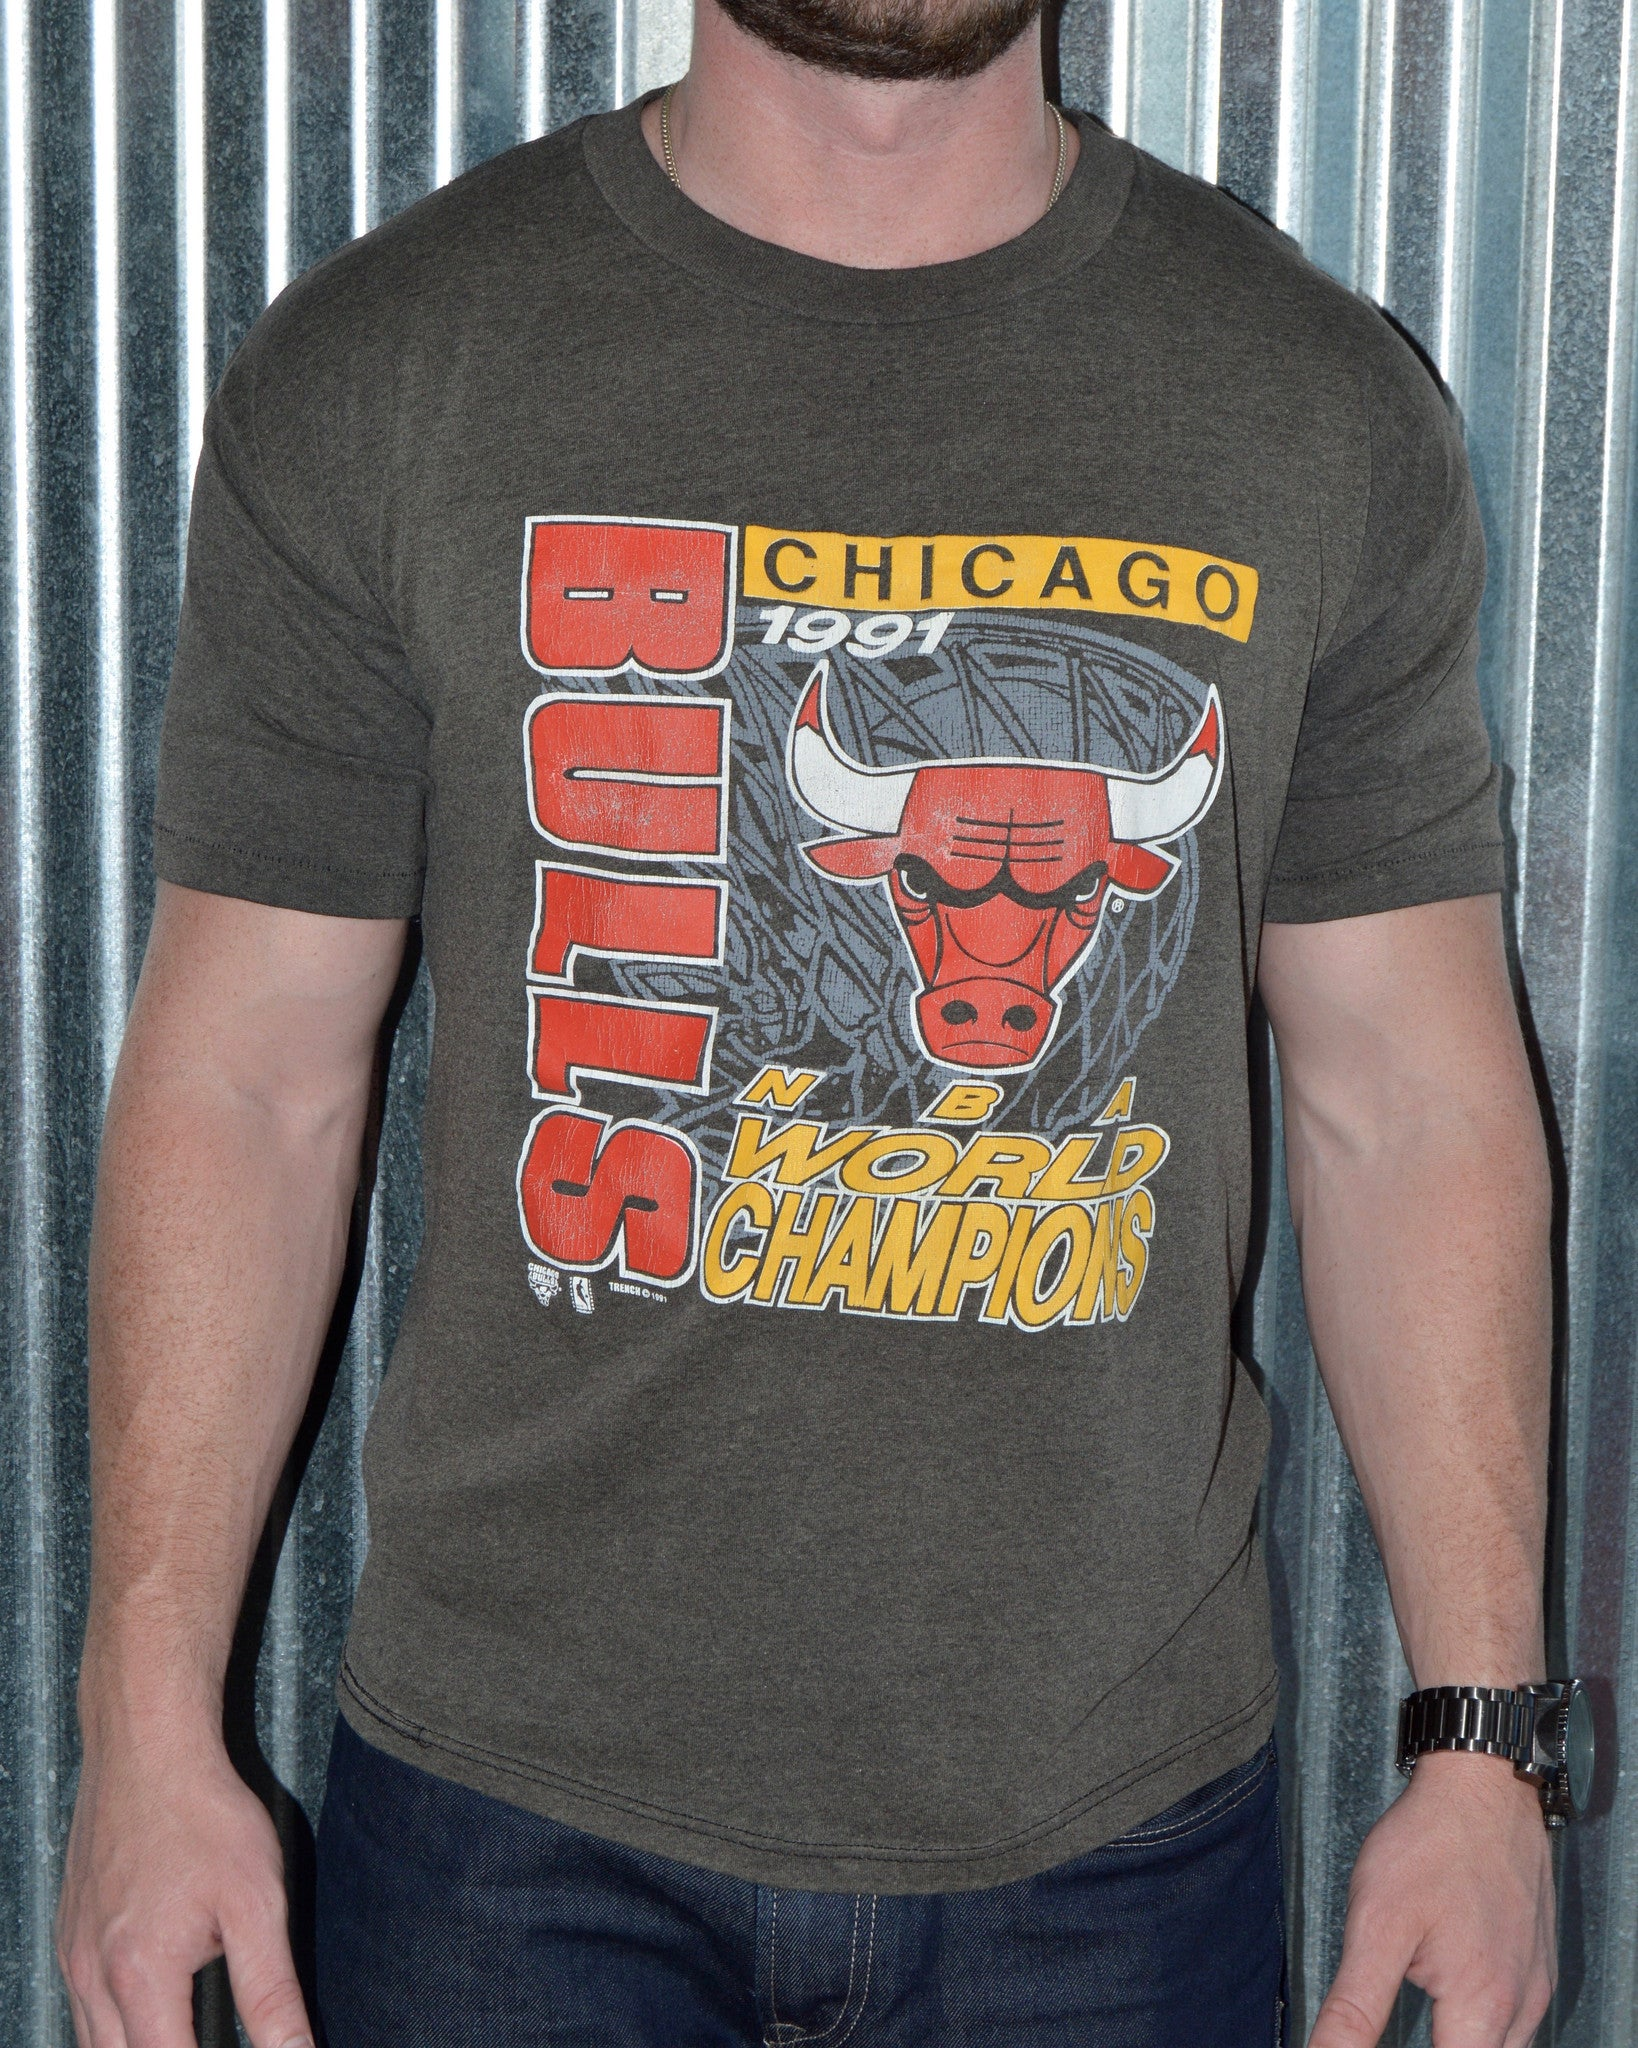 free shipping a4b47 35750 Vintage Chicago Bulls NBA World Champs T-Shirt sz M